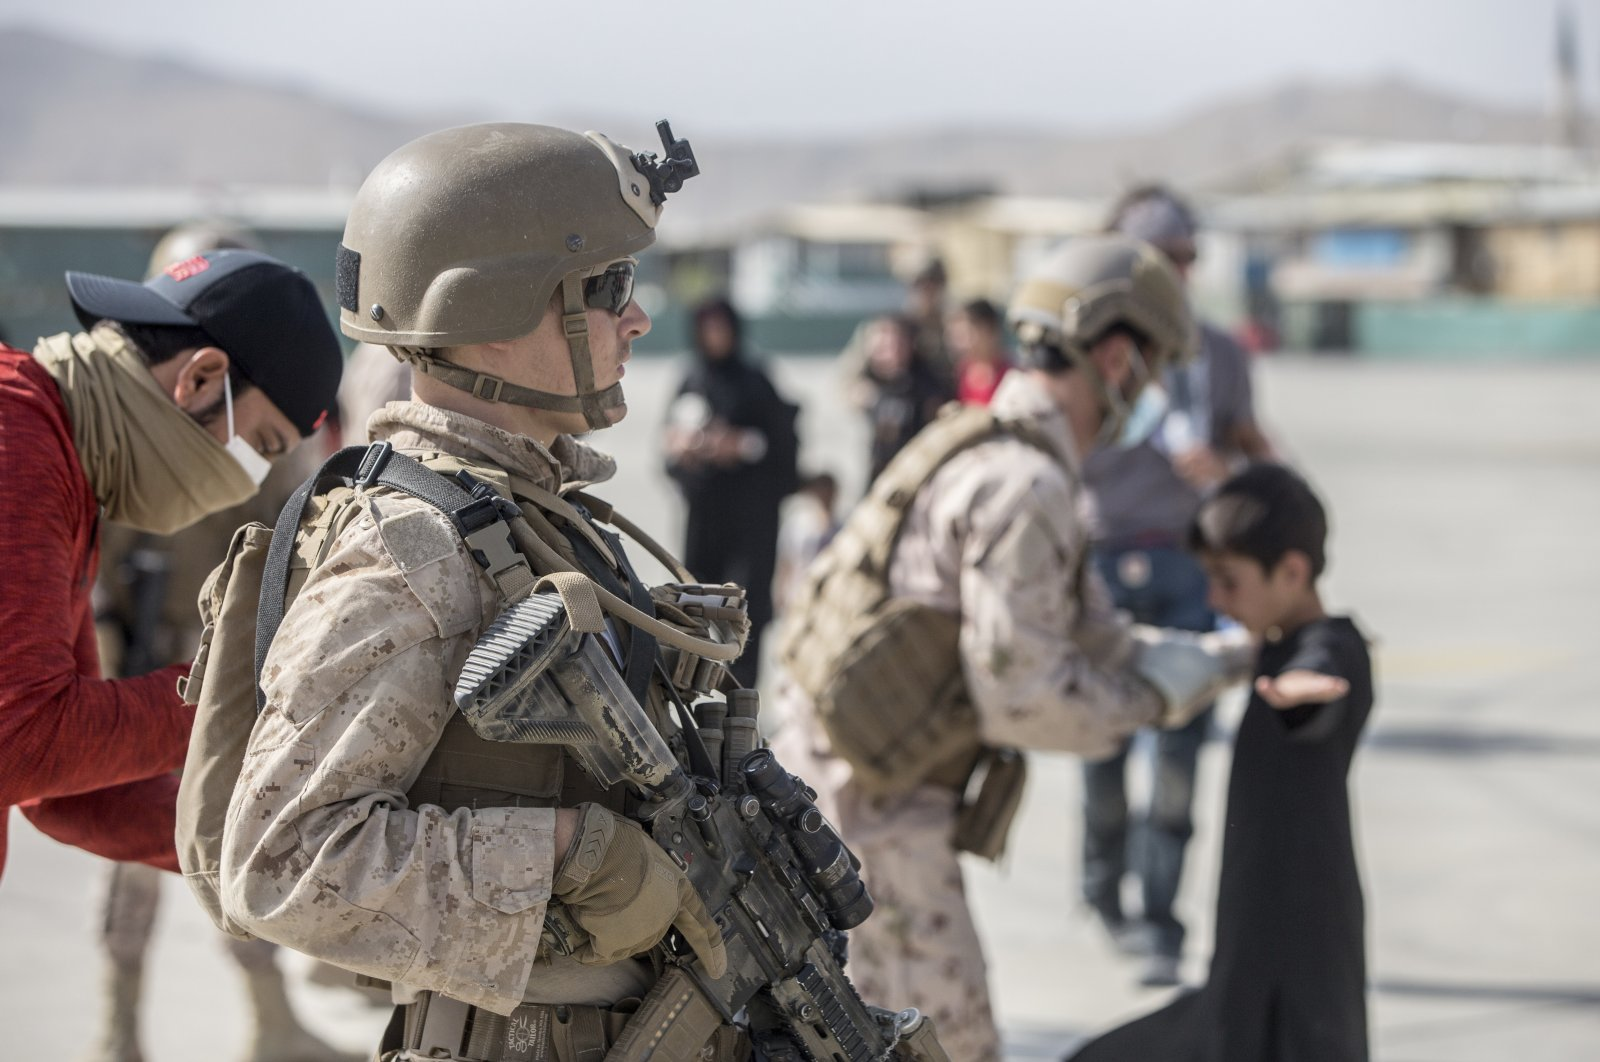 A Marine with Special Purpose Marine Air-Ground Task Force-Crisis Response-Central Command (SPMAGTF-CR-CC) provides assistance during an evacuation at Hamid Karzai International Airport in Kabul, Afghanistan, Aug. 21, 2021. (AP Photo)